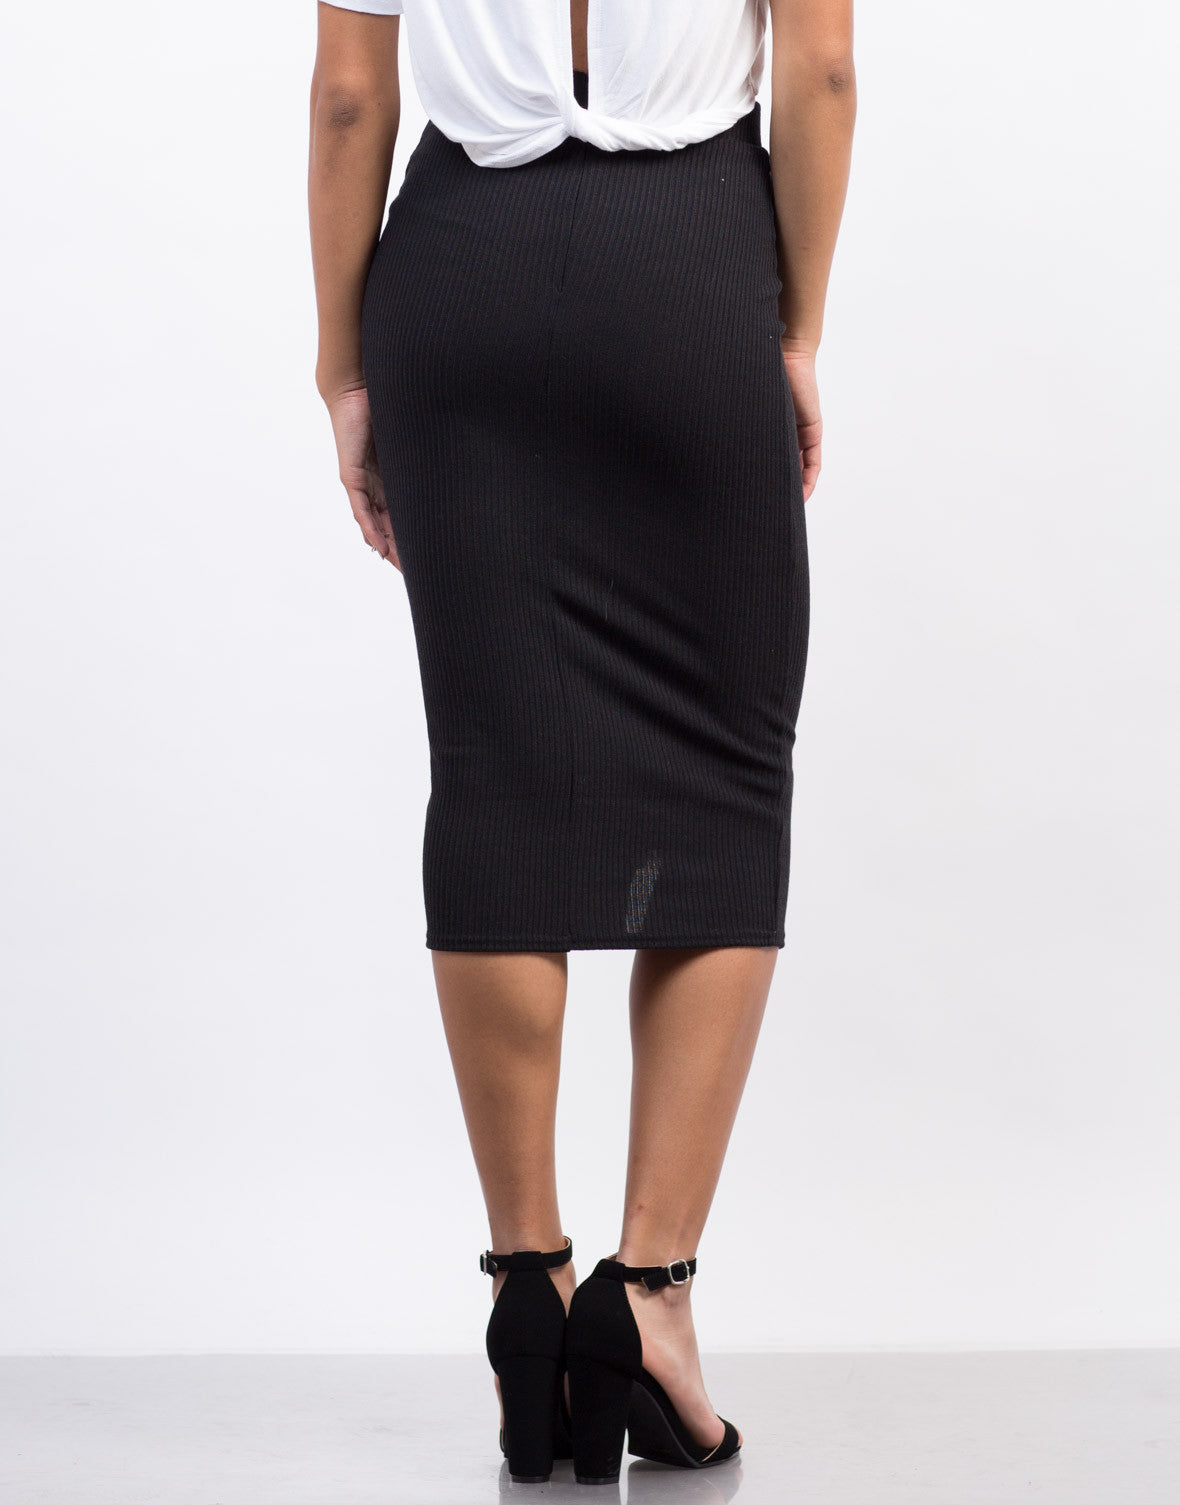 Back View of Zipper Ribbed Midi Skirt